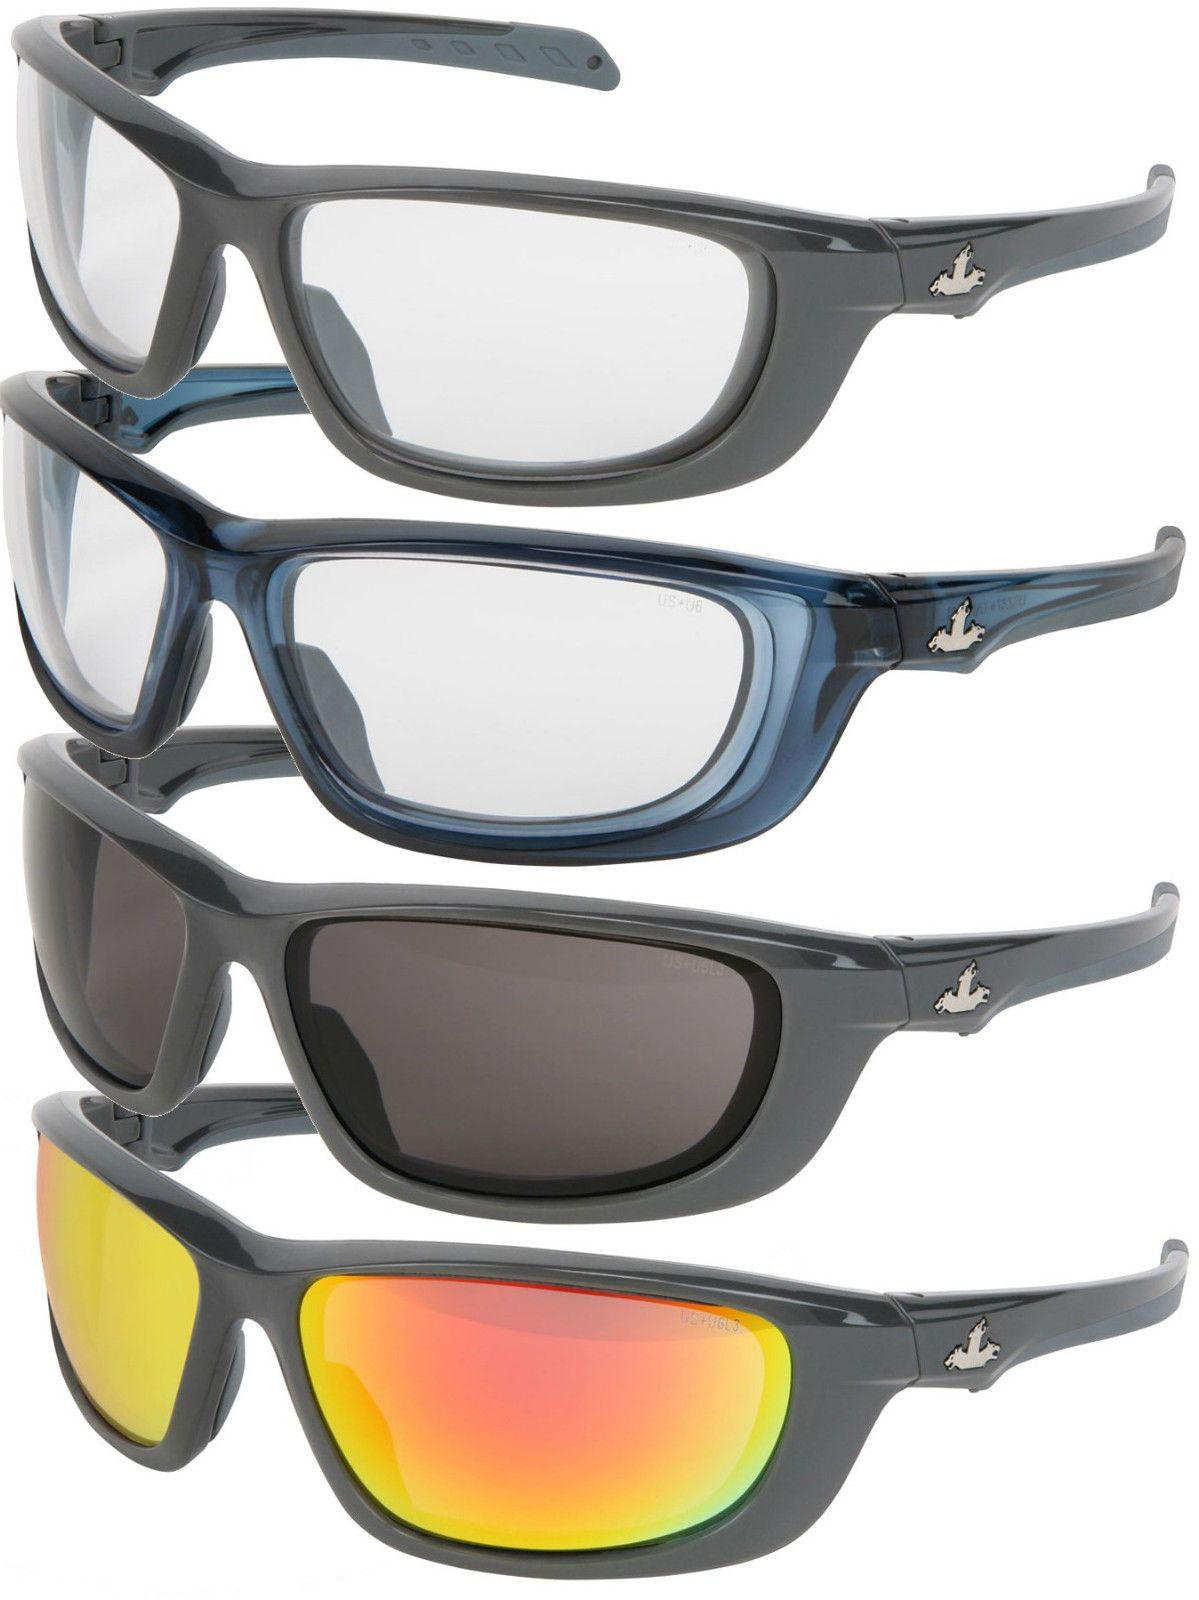 Glasses Goggles and Shields 43615 Mcr Safety Uss Defense